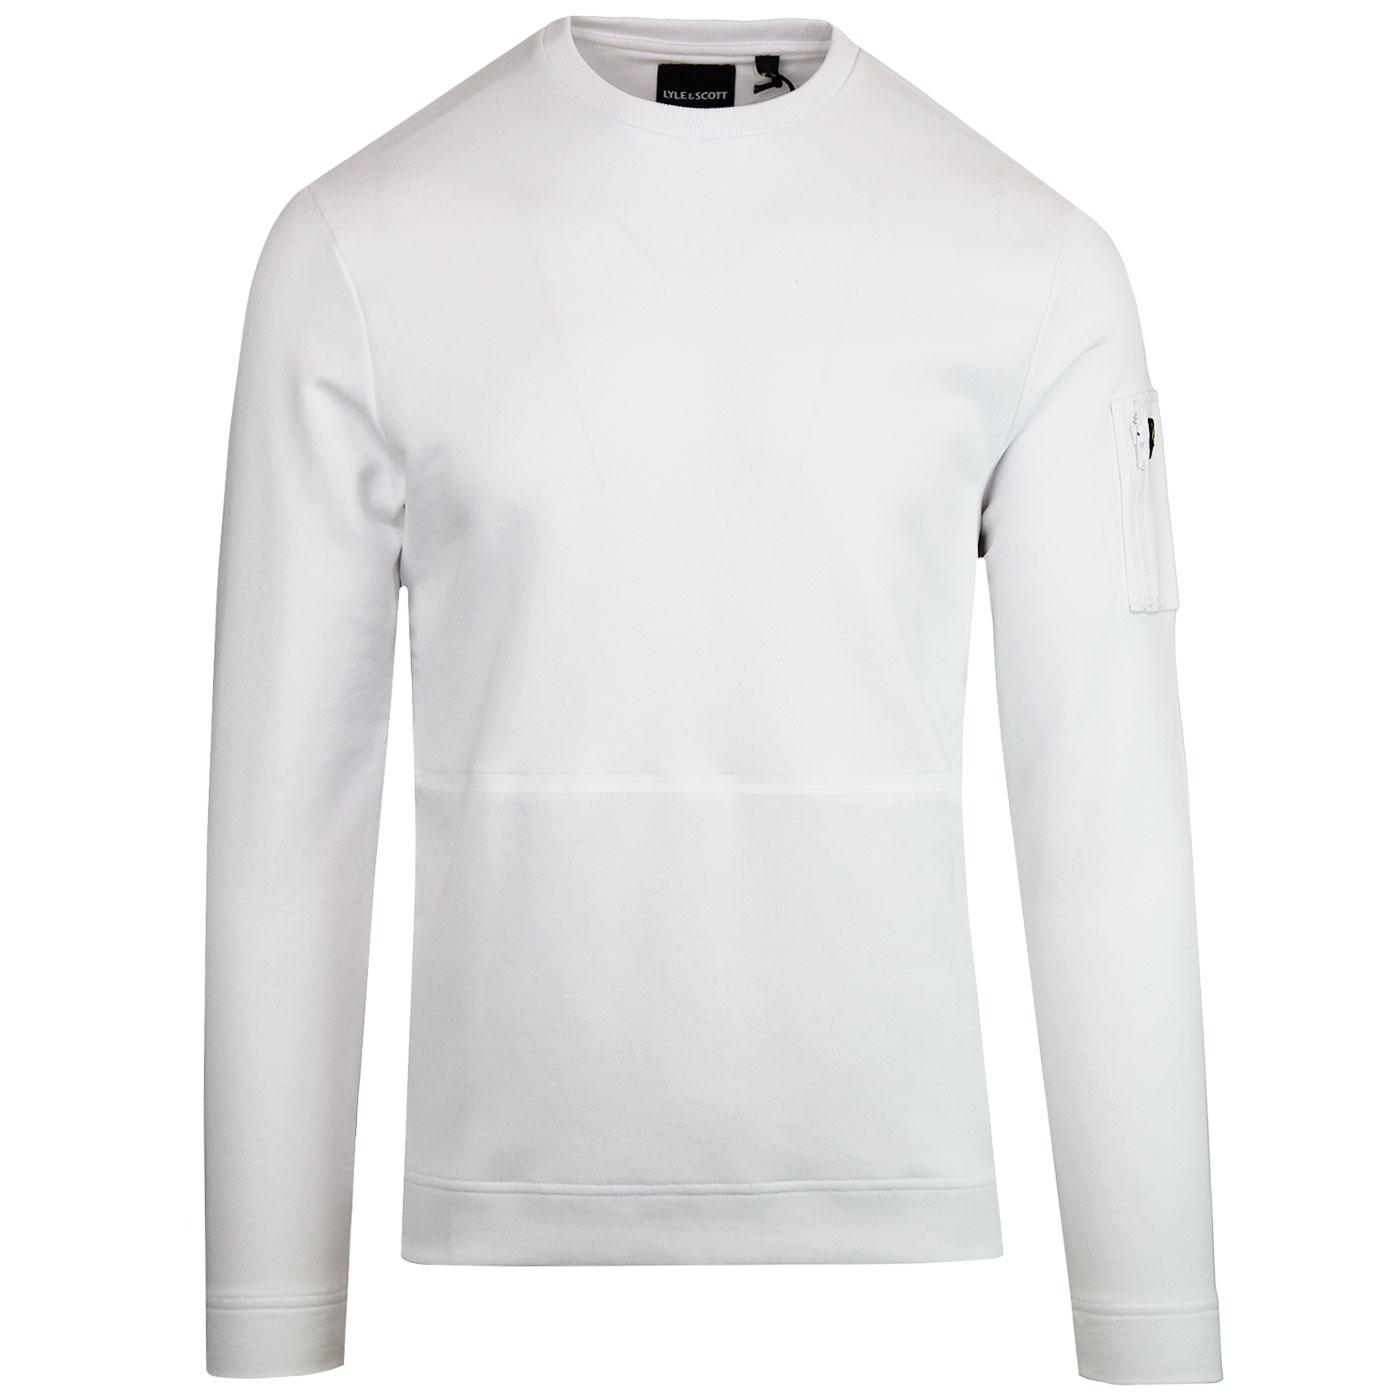 LYLE & SCOTT Men's Retro Casuals Sweatshirt WHITE